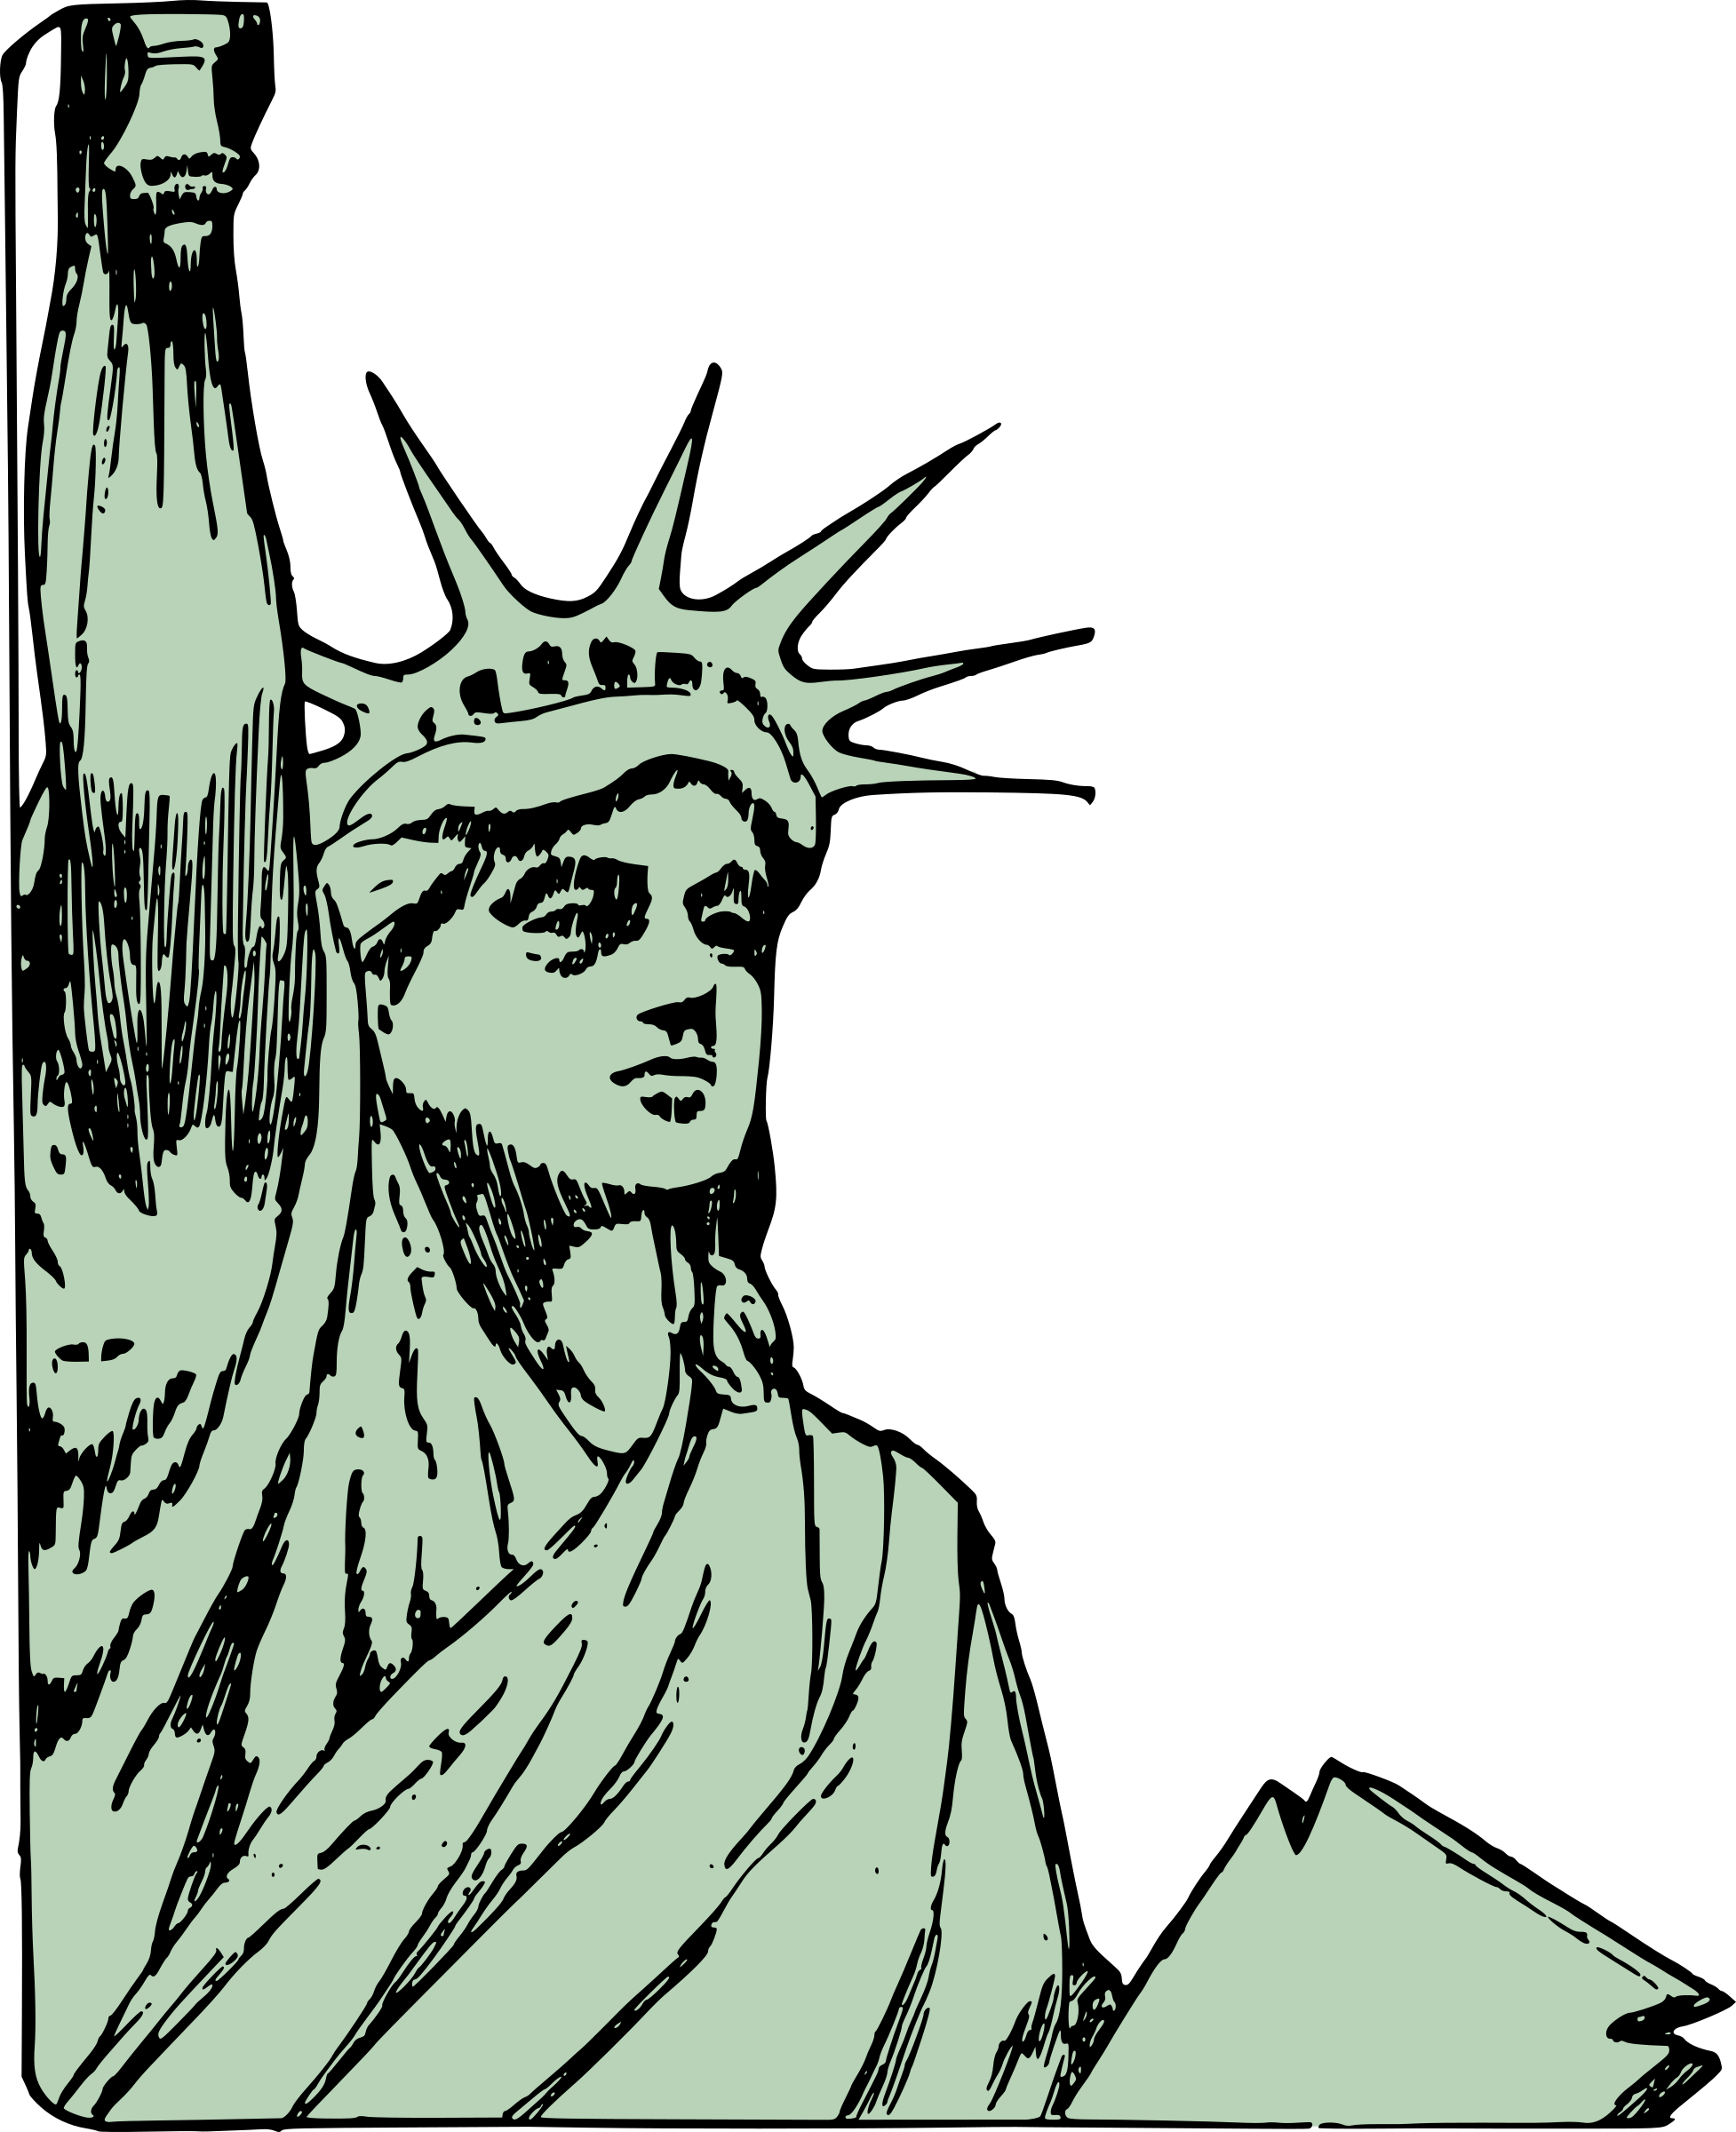 Statue of Liberty - Face by j4p4n